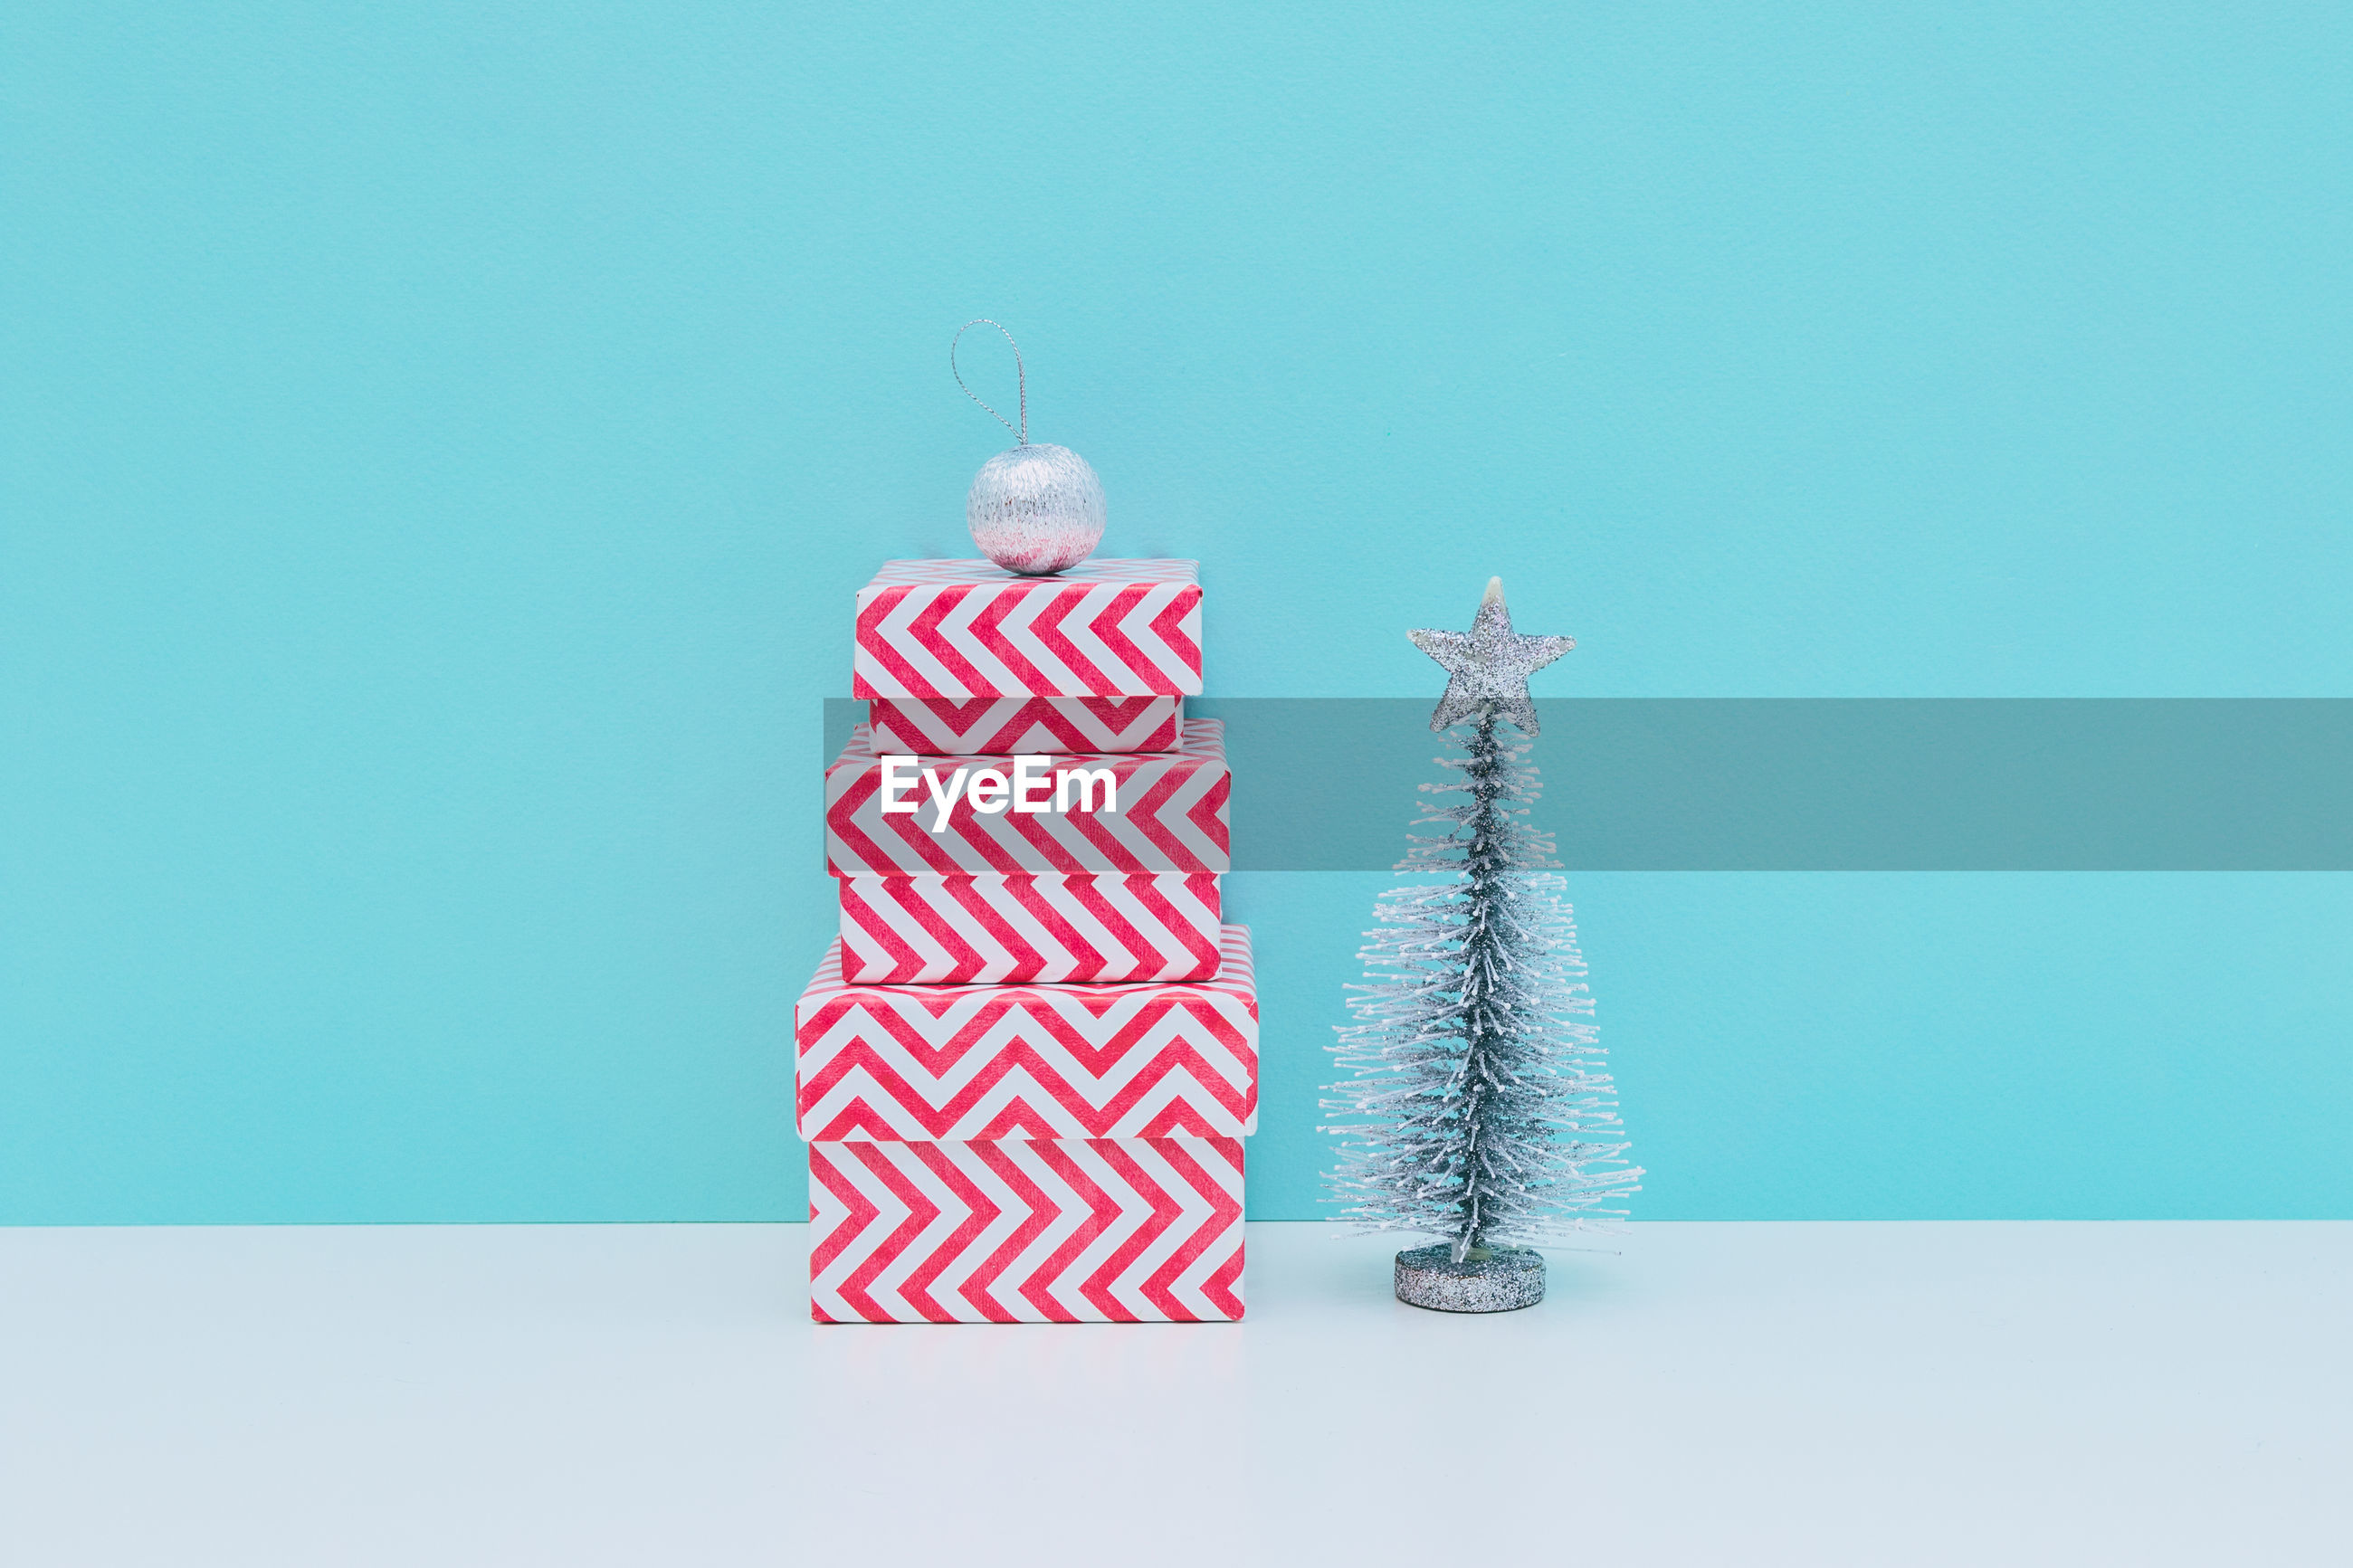 Christmas decoration on table against blue background